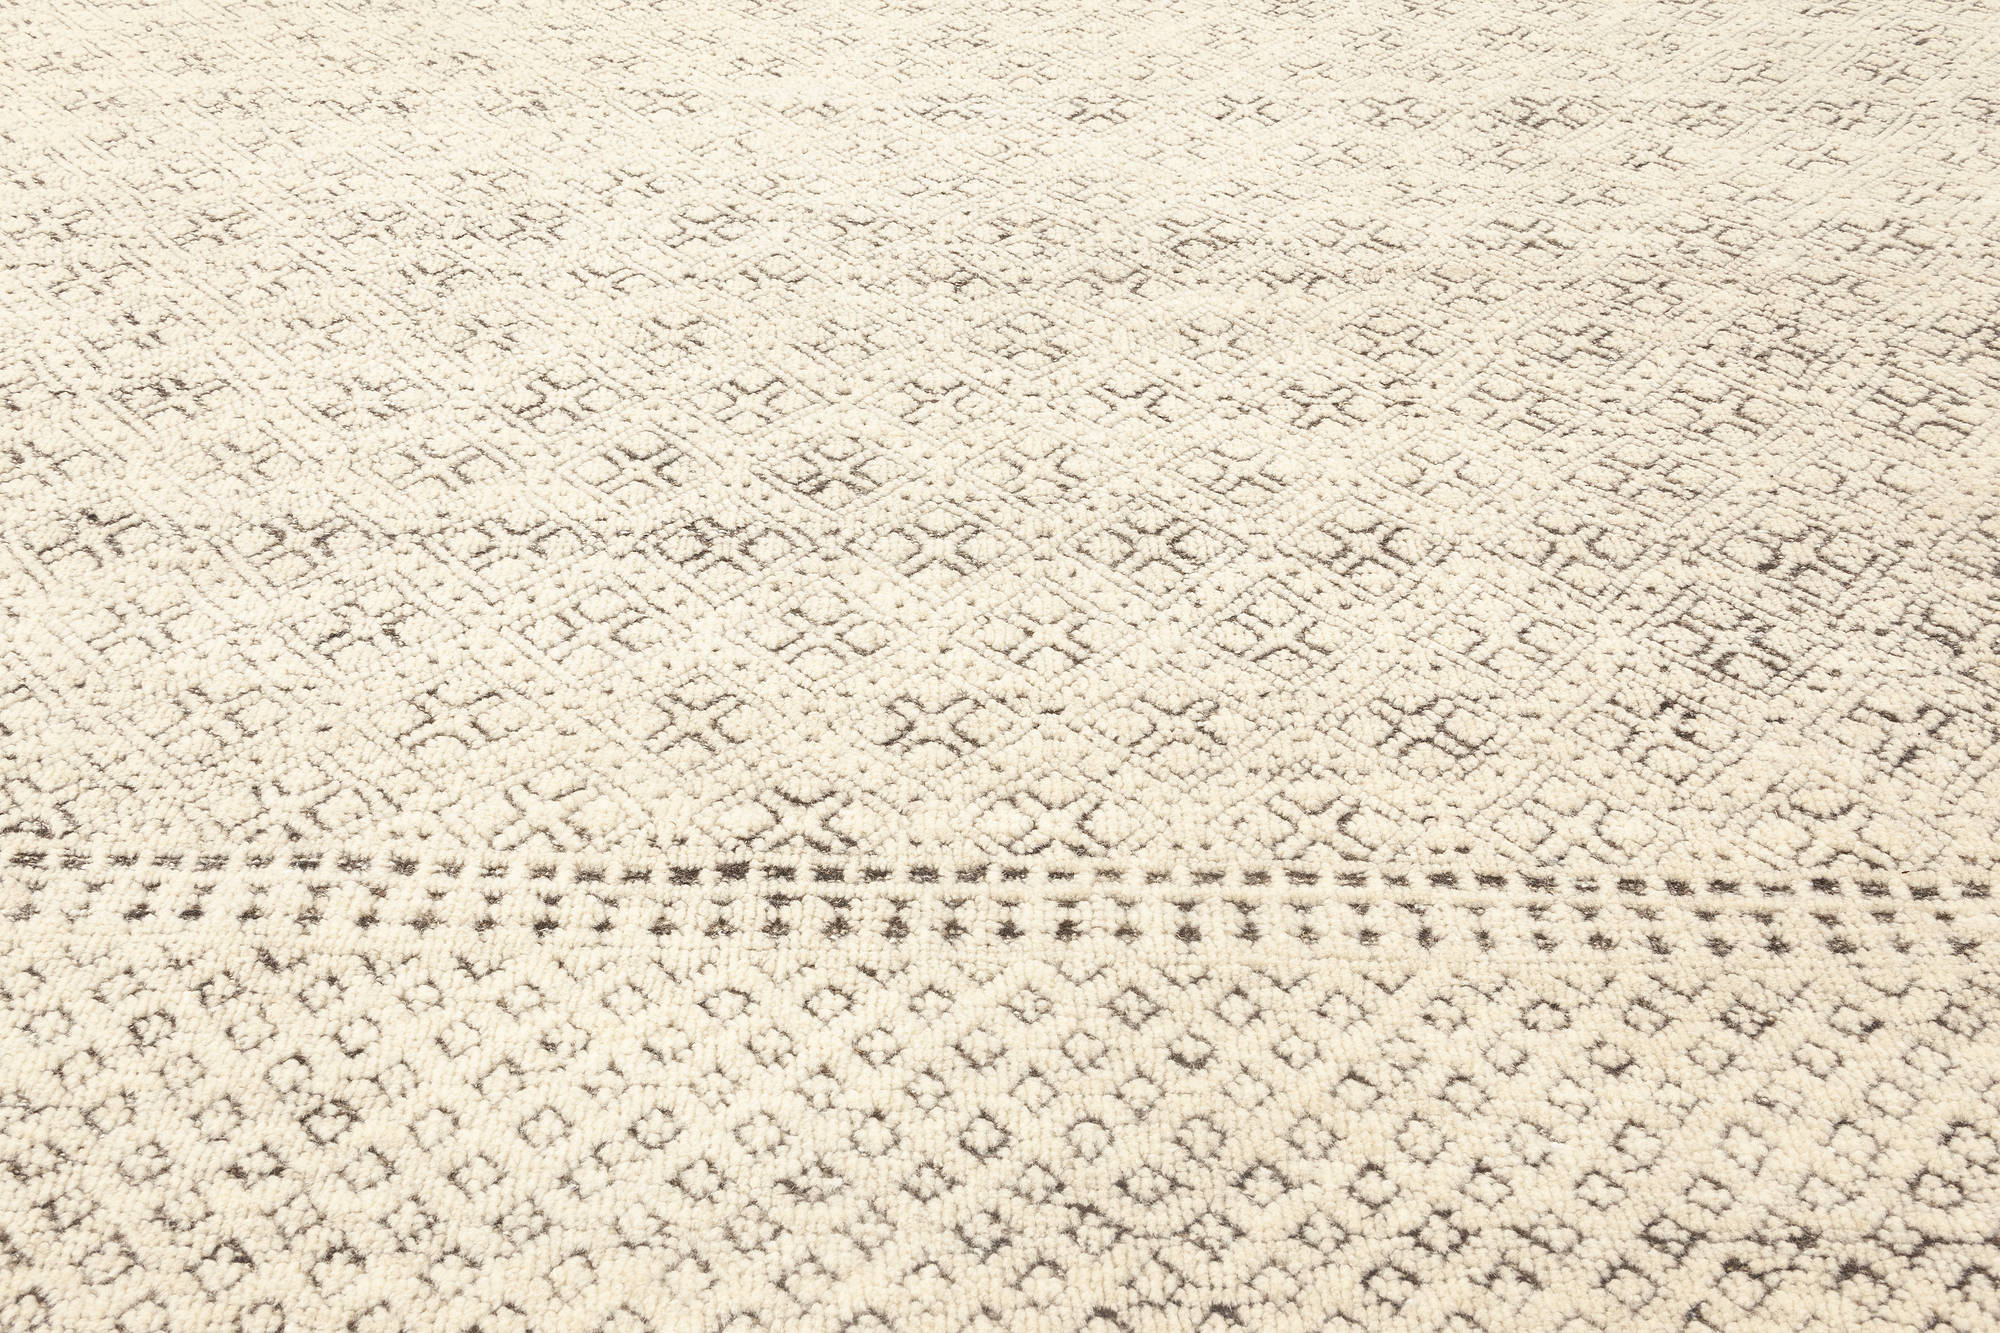 Oversized Moroccan Elements Rug N12072 By Dlb